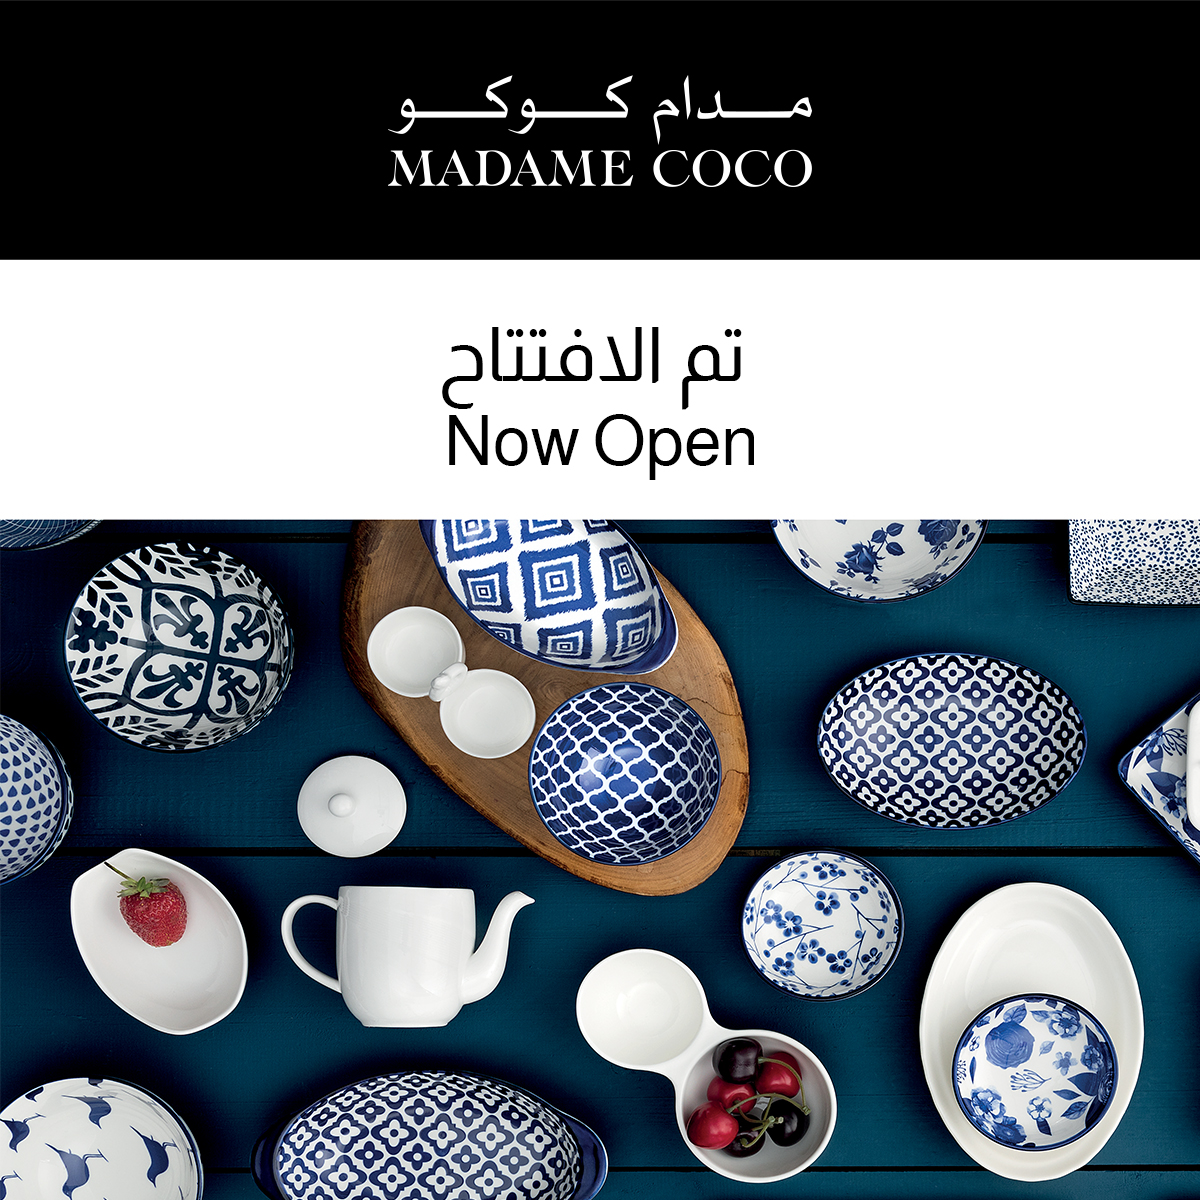 MADAME COCO OPENS FIRST STORE IN QATAR!